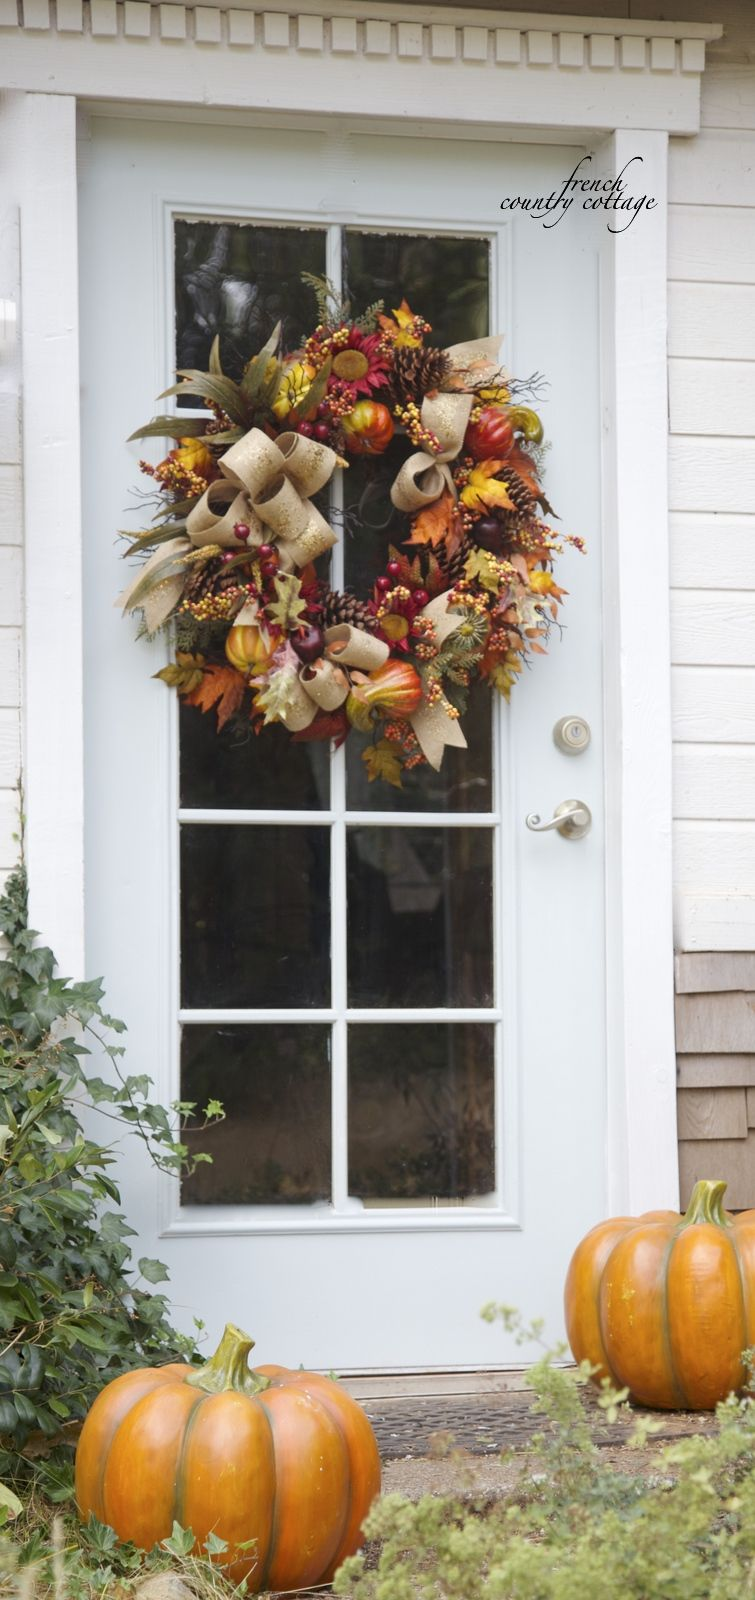 So Pretty - Simple Fall Door Decor ! French Country Cottage | Fall ...